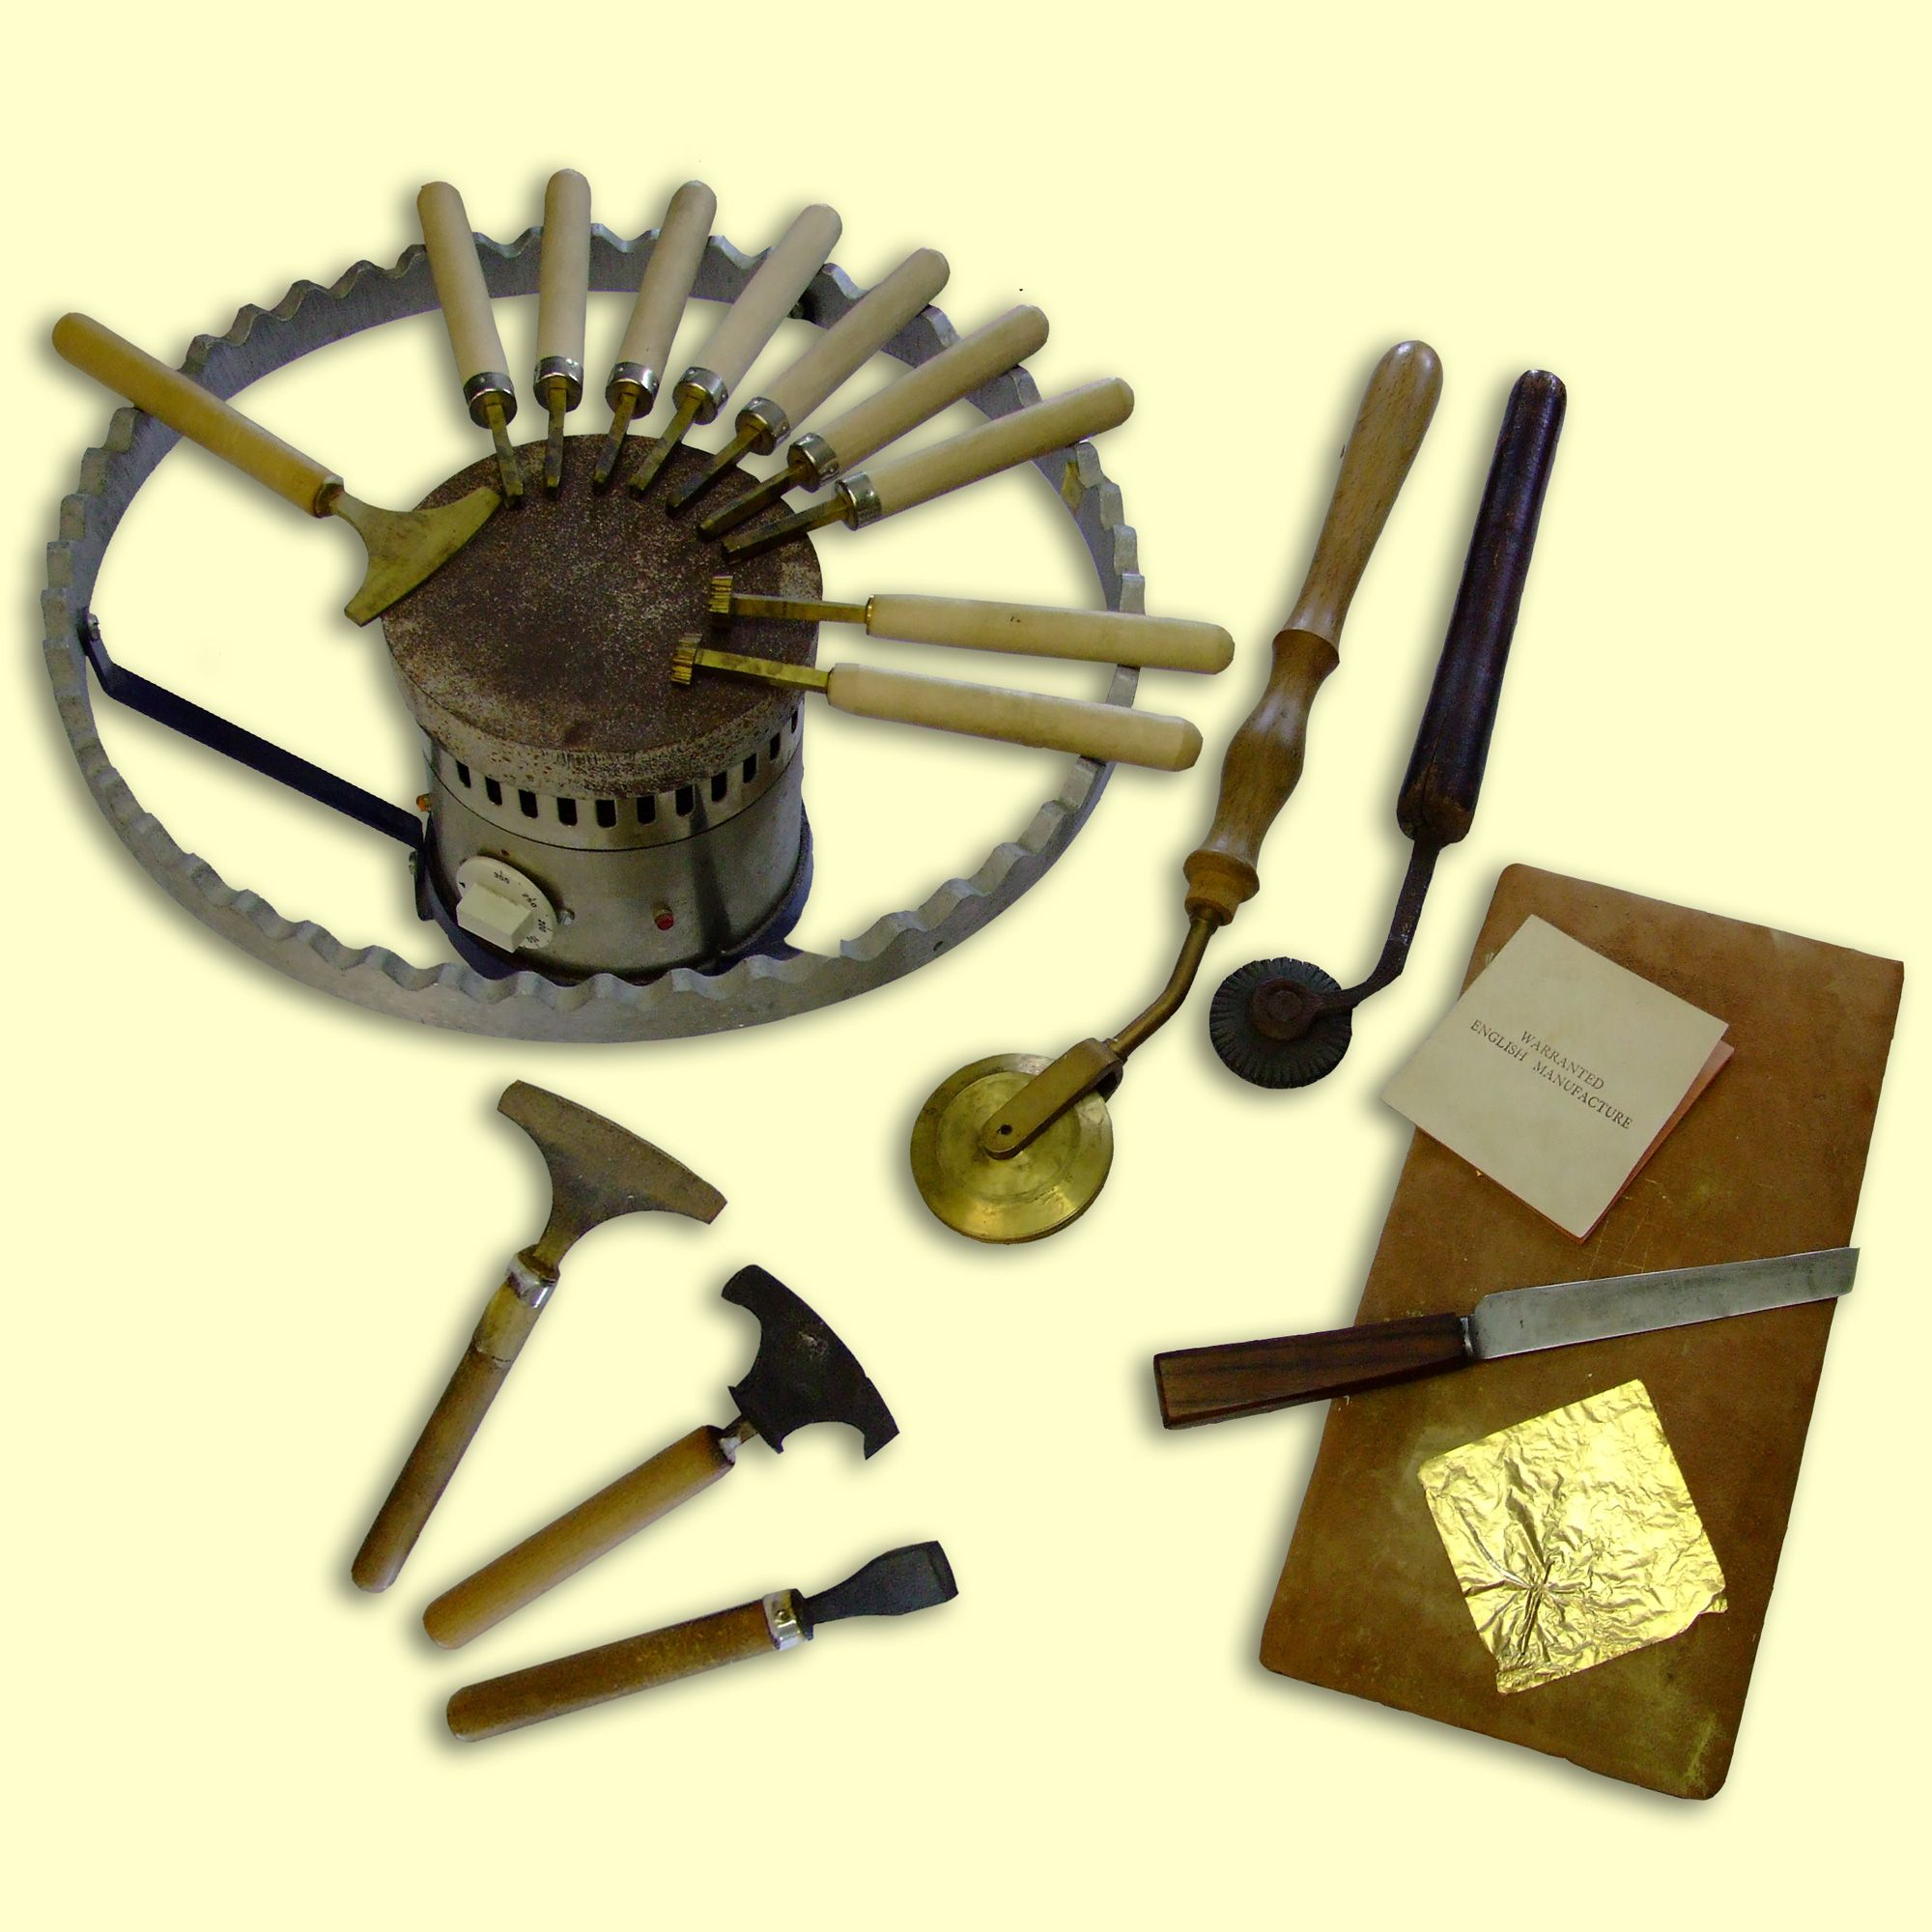 TECHNOLOGY (evolution of hand tools) Bookbinder's